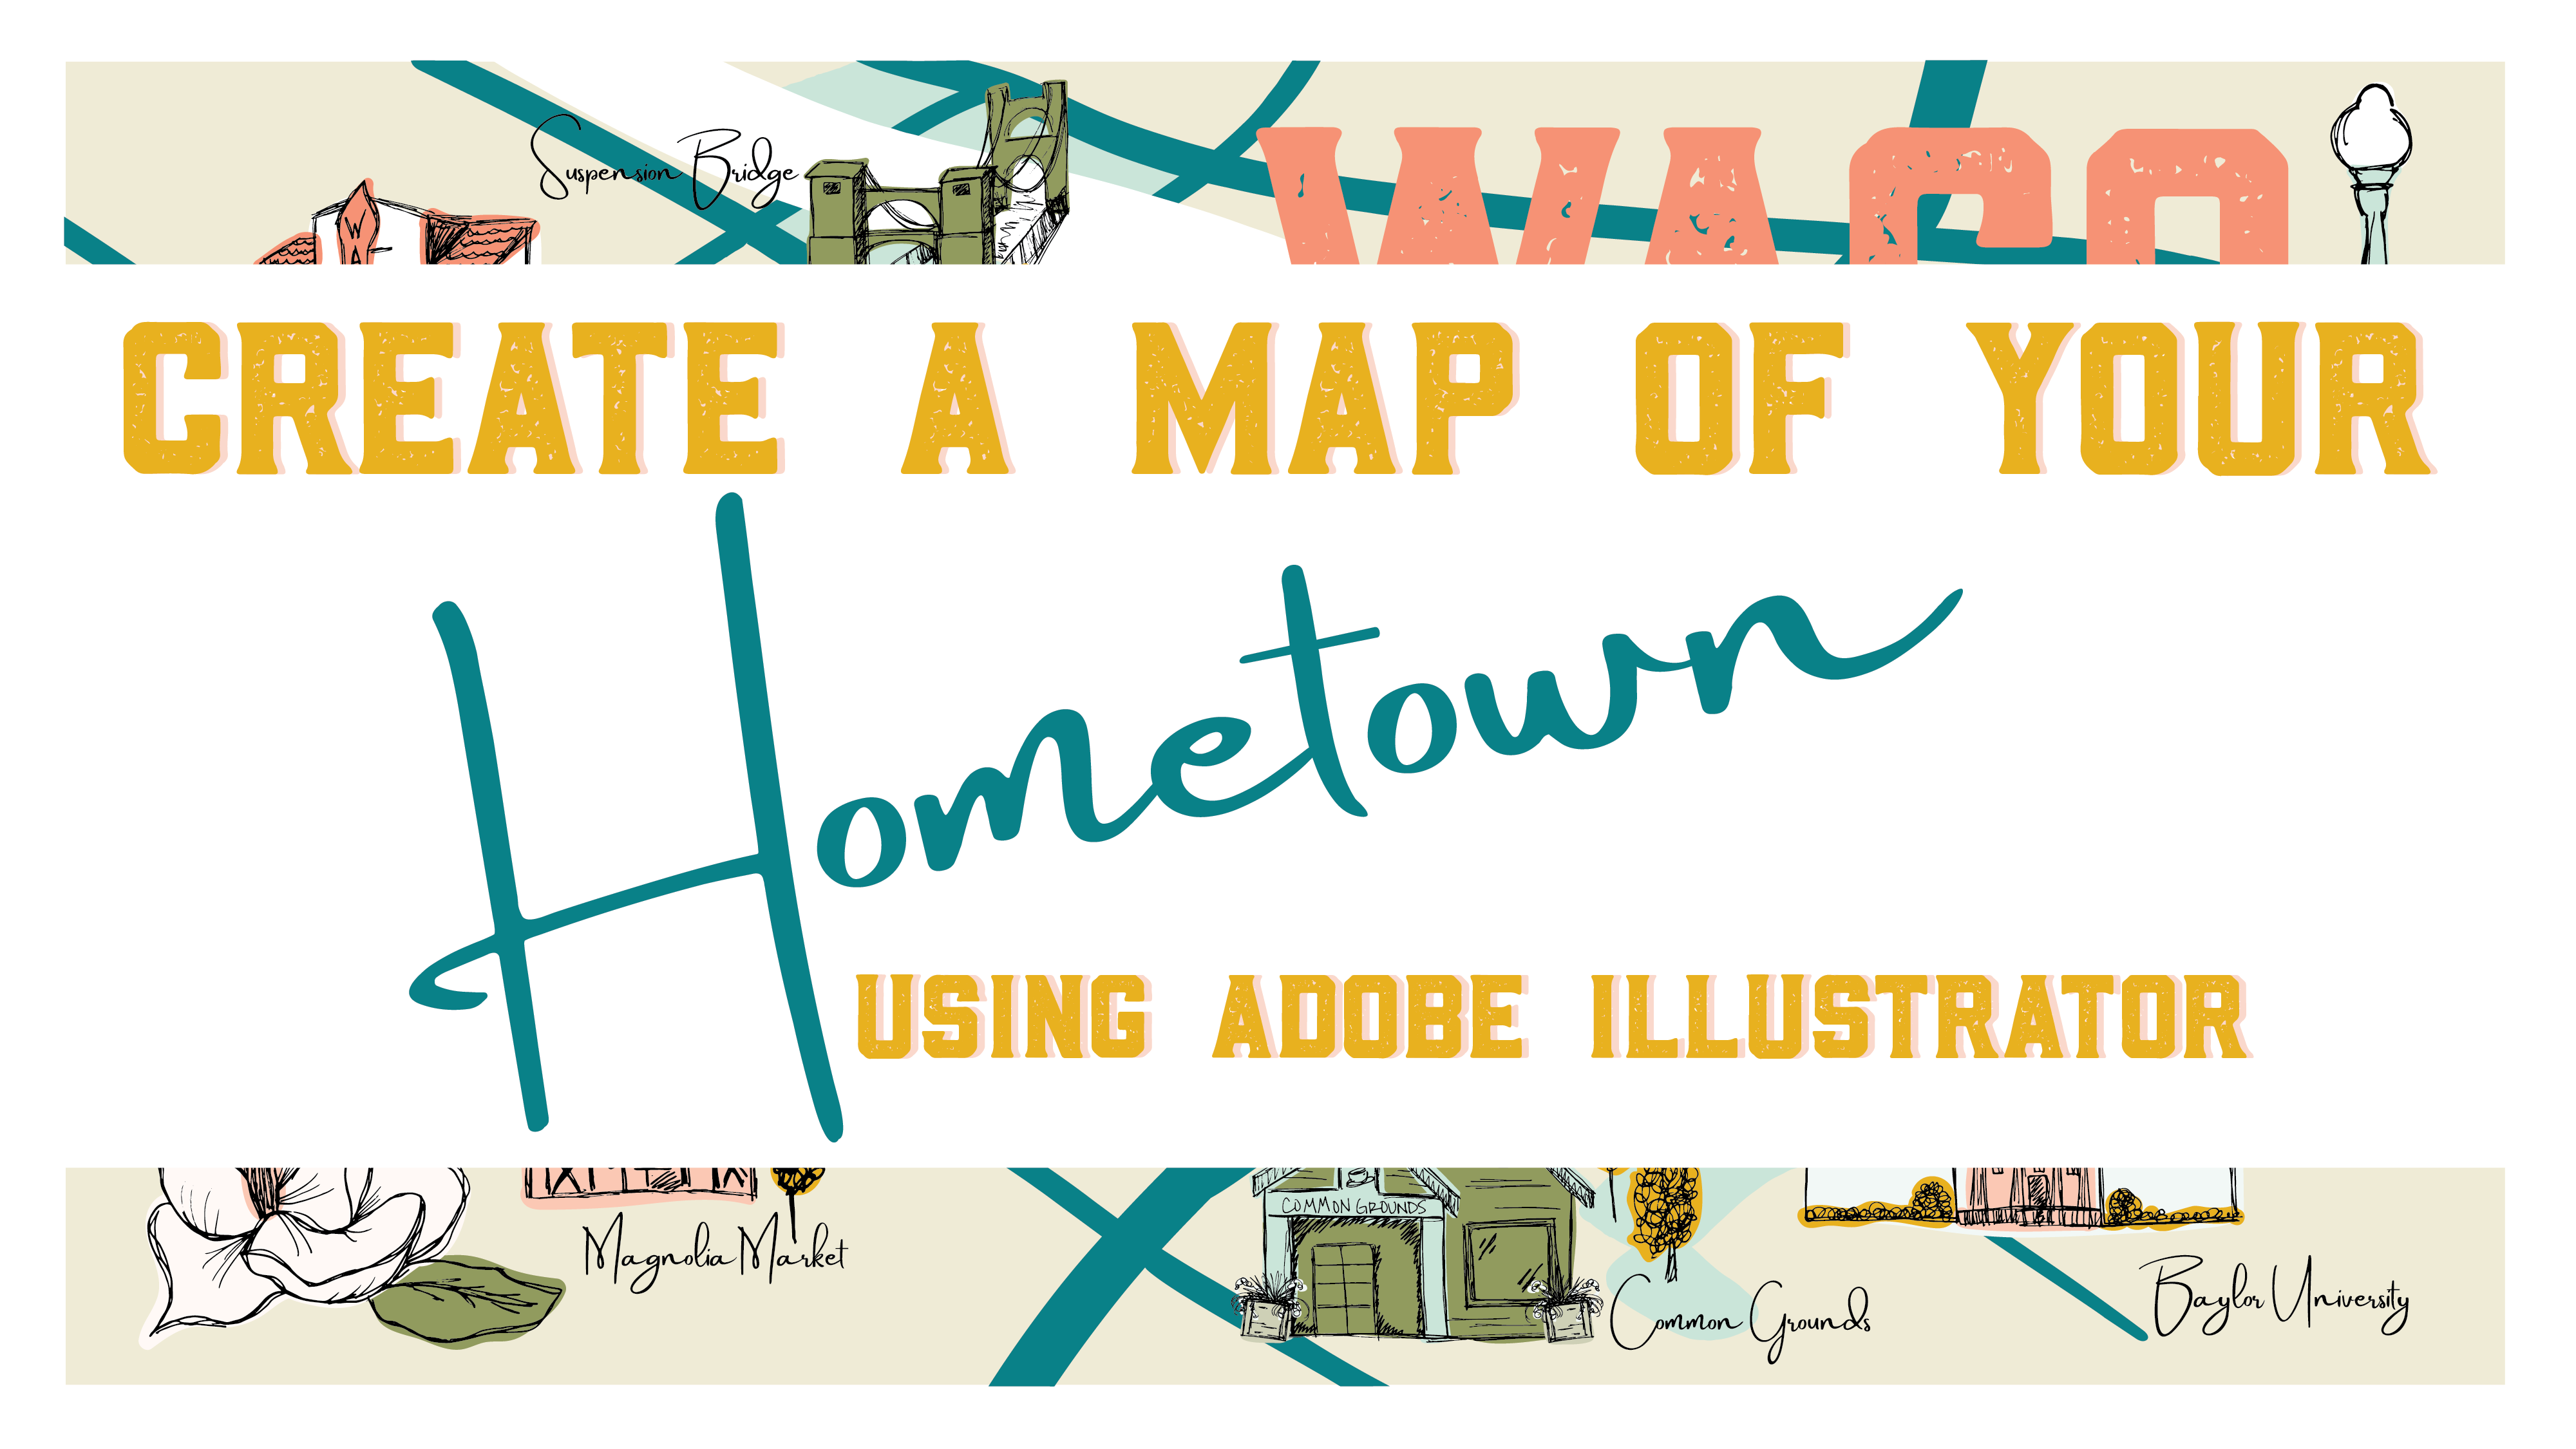 Map Of Josephine County Oregon, In This Class We Are Going To Learn How To Create A Map Of Your Hometown Using Adobe Illustrator This Class Does Assume That You Have Some Very Basic, Map Of Josephine County Oregon